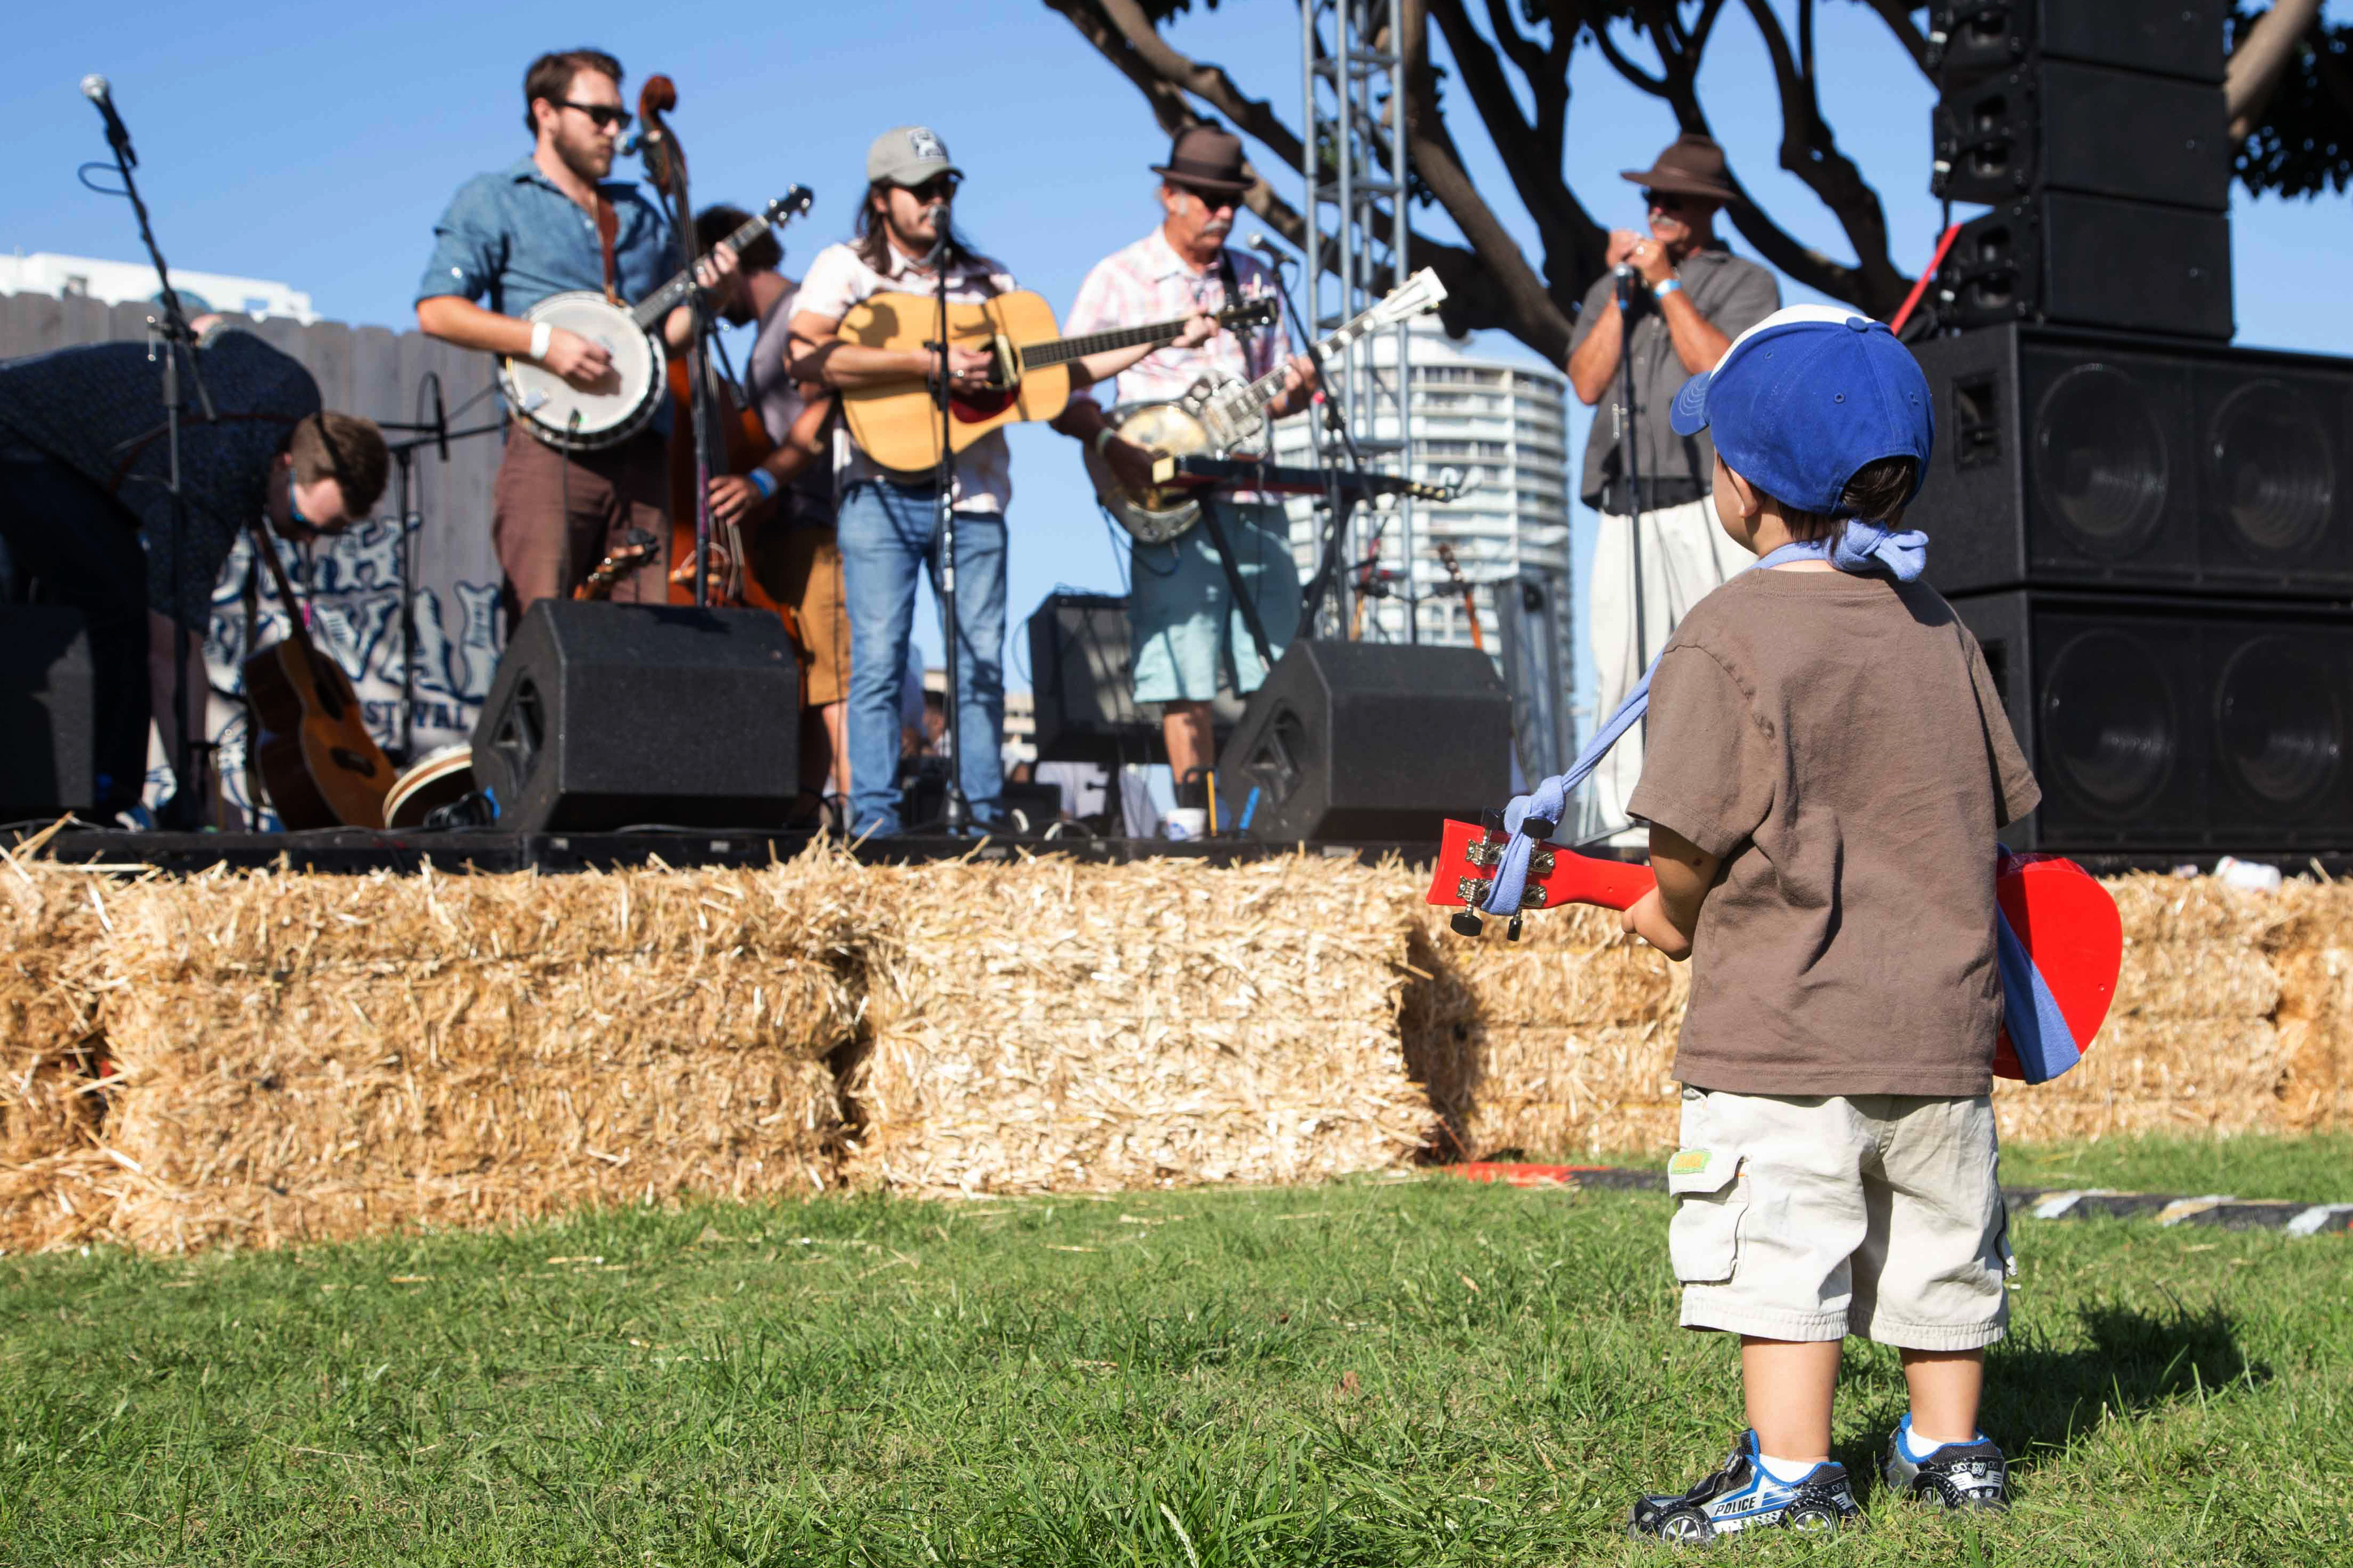 Long beach folk revival festival